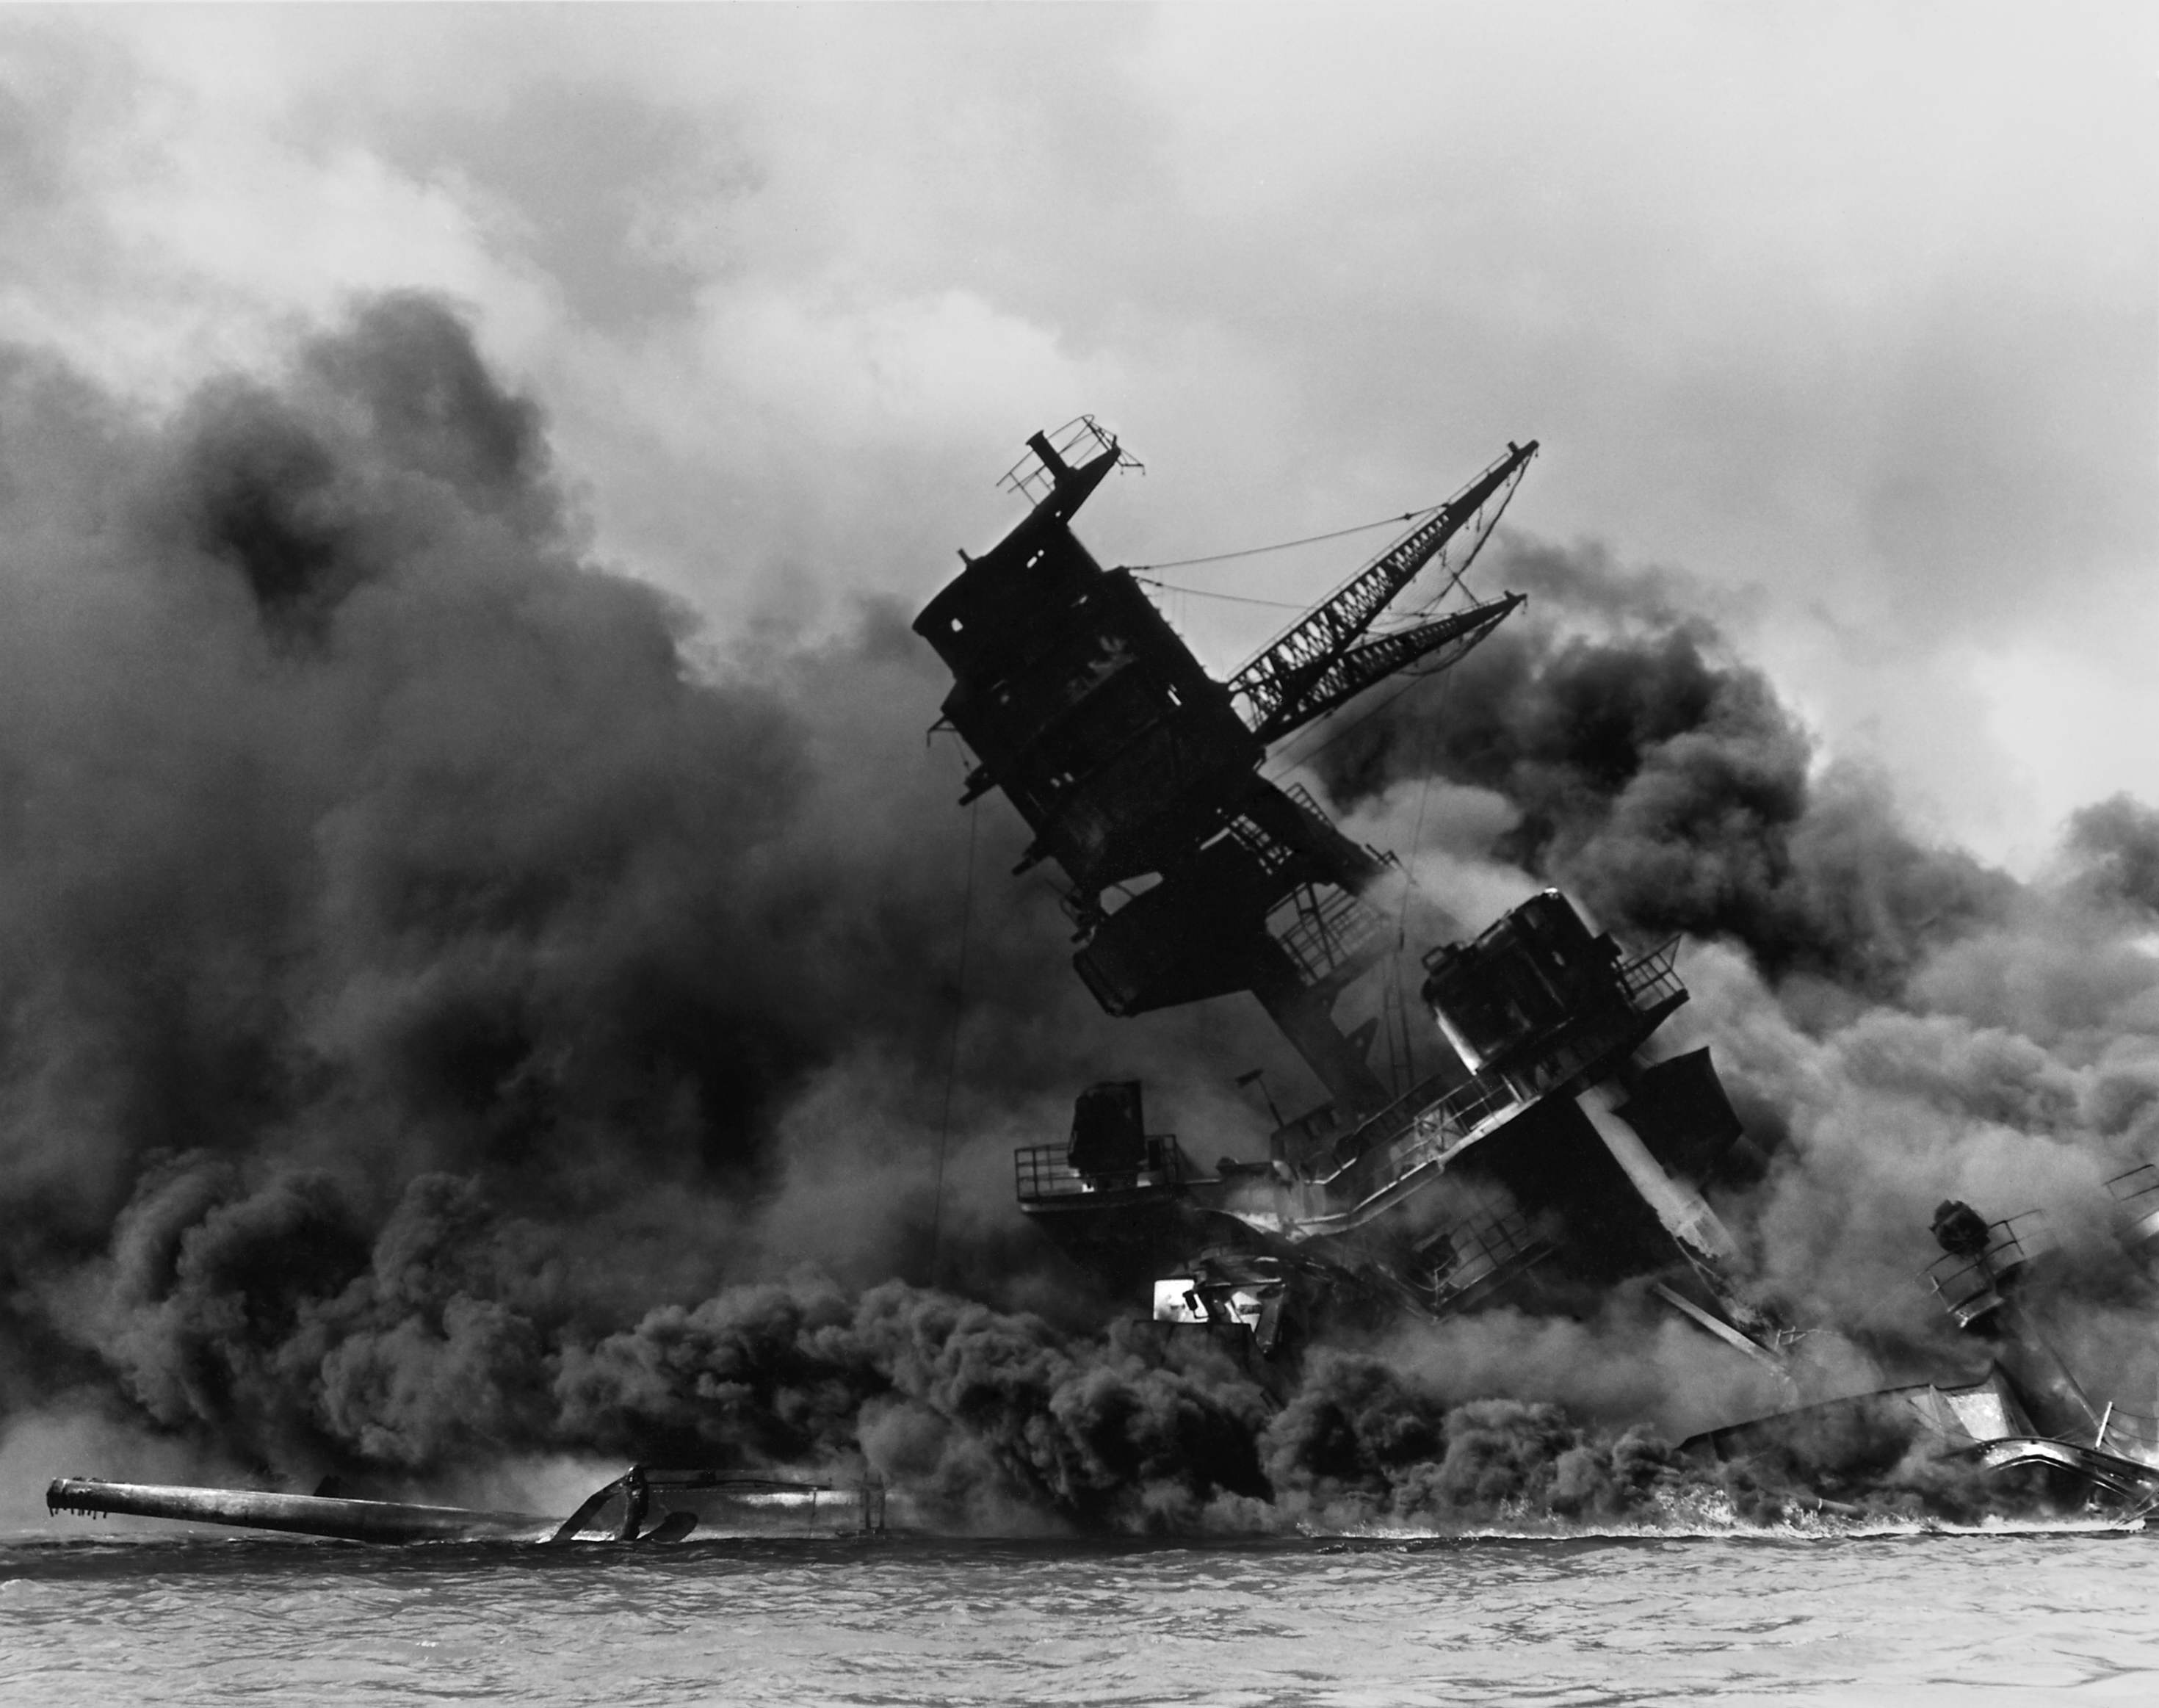 The USS Arizona (BB 39) burning after the Japanese attack on Pearl Harbor   NARA 195617   Edit - Le USS Arizona s'effondre lors de l'attaque de Pearl Harbor